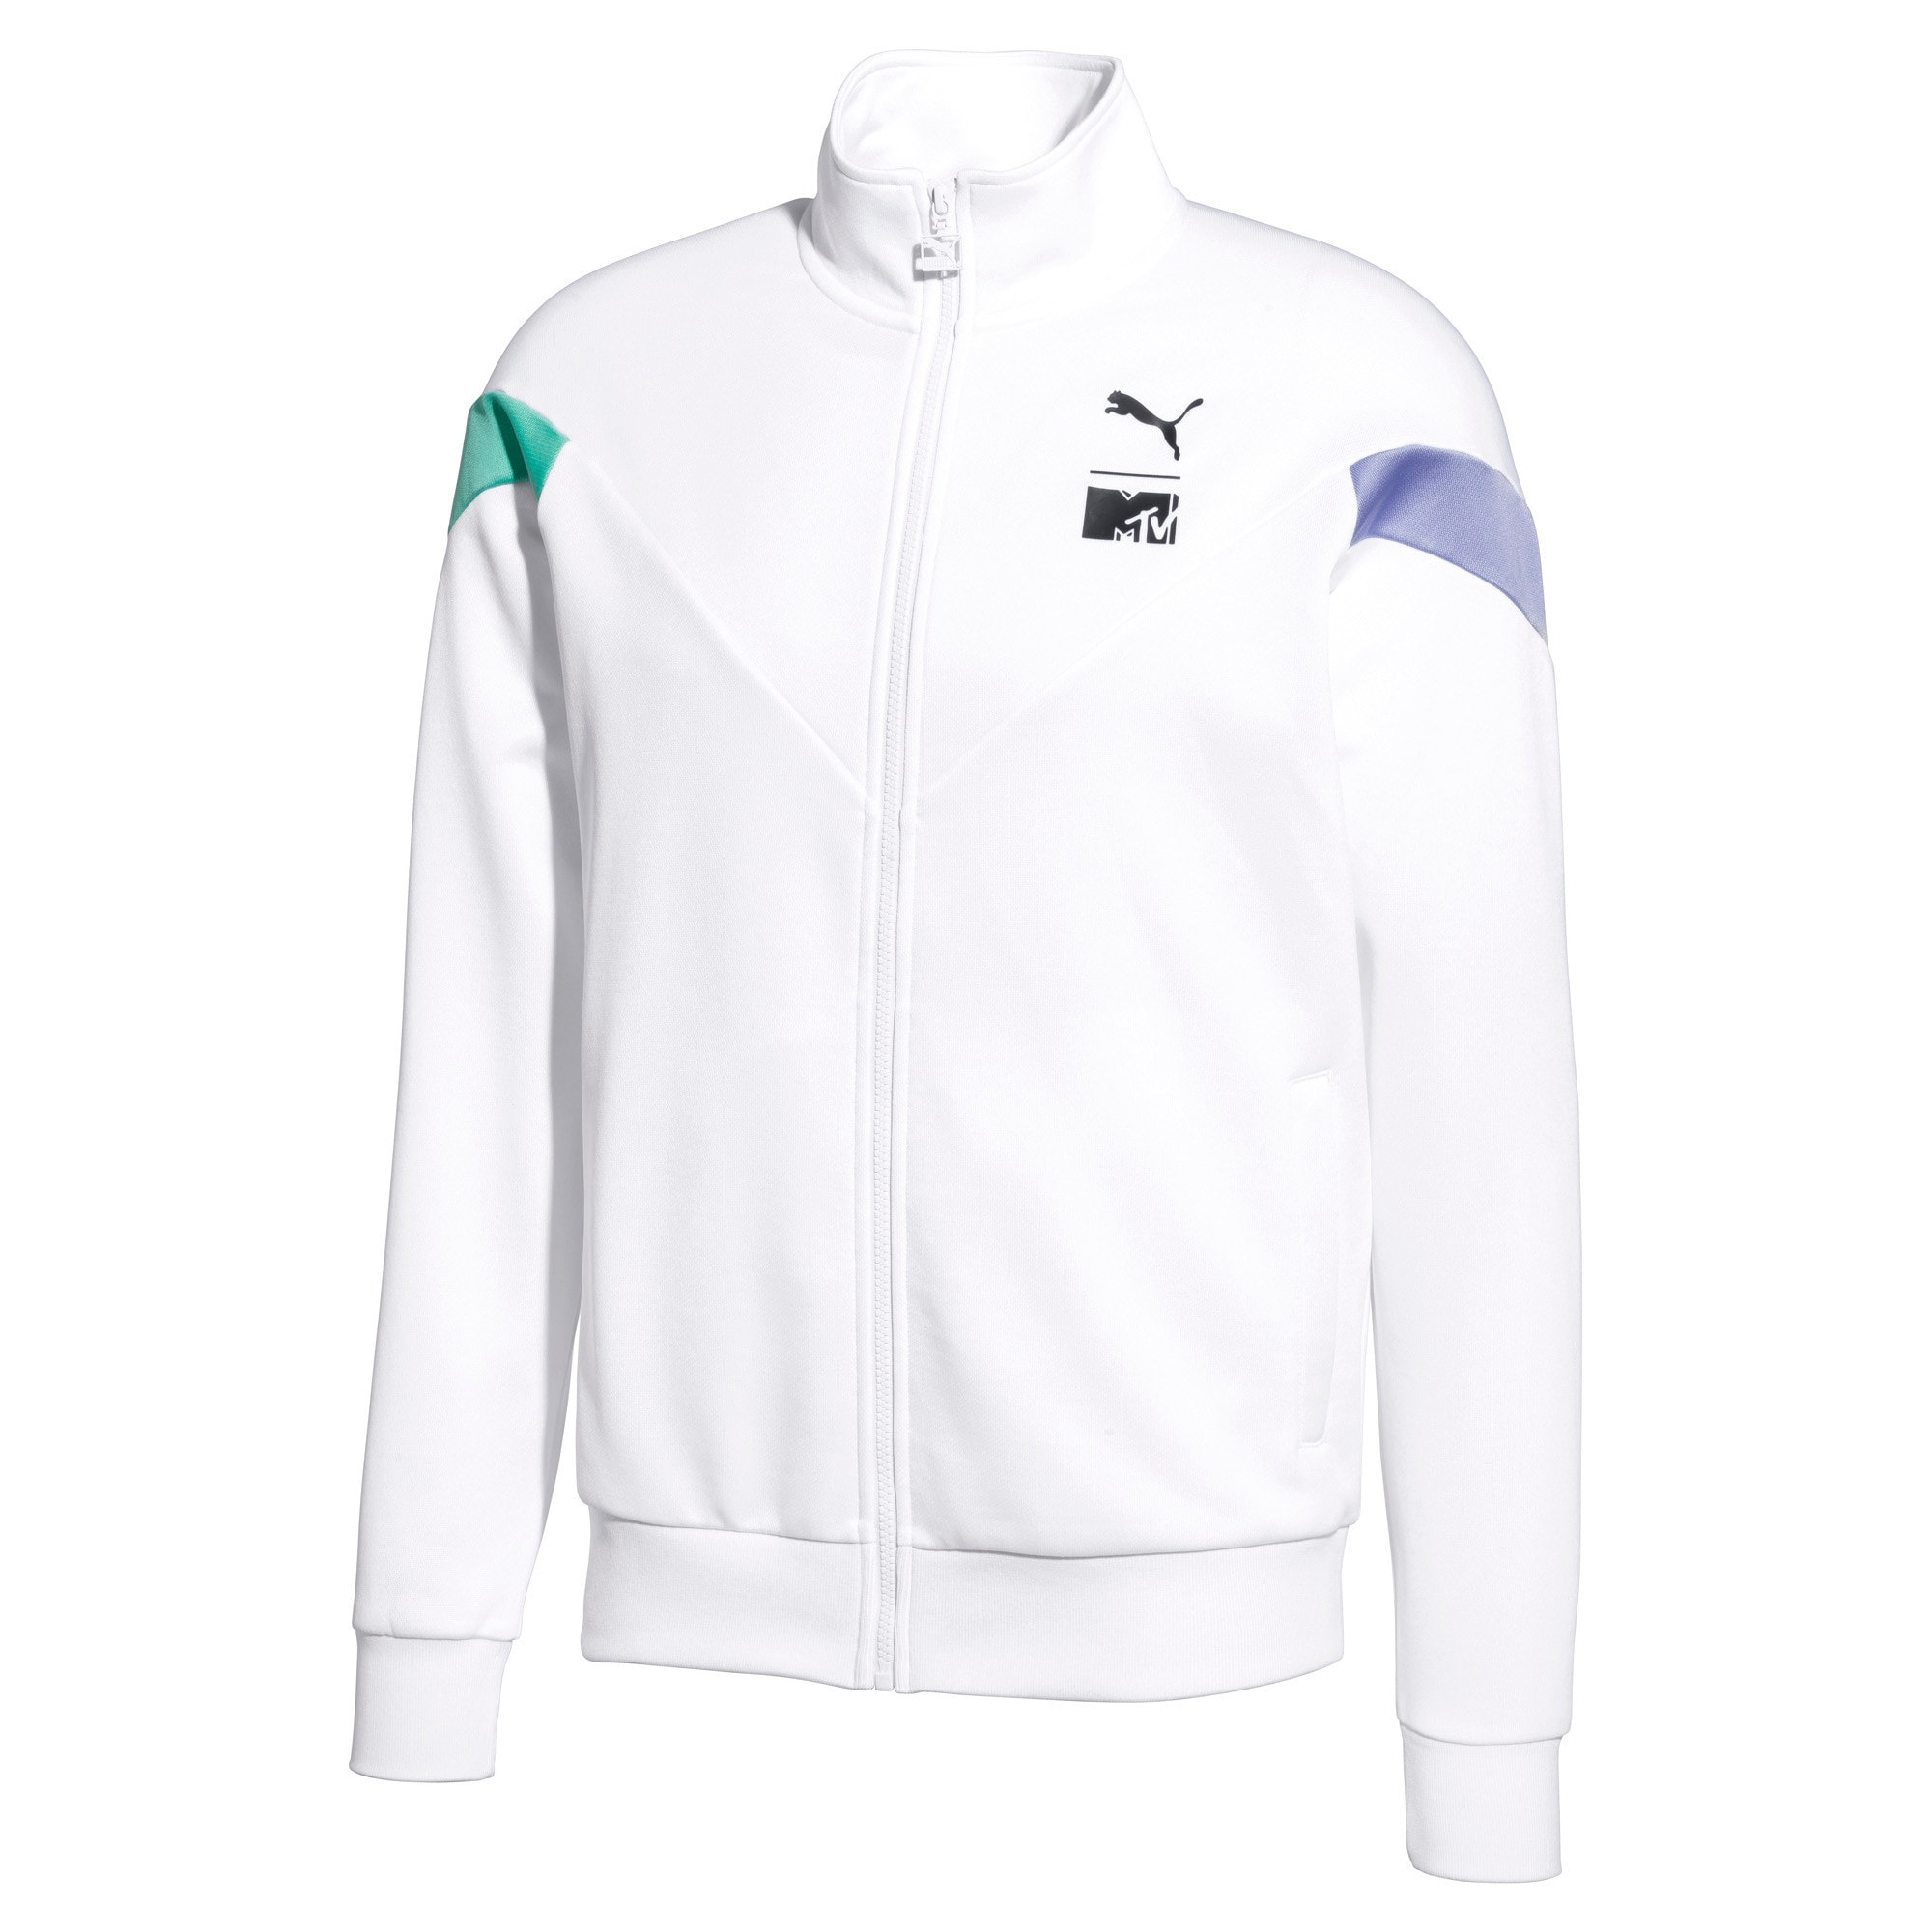 Thumbnail 1 of PUMA x MTV MCS Men's Track Jacket, Puma White, medium